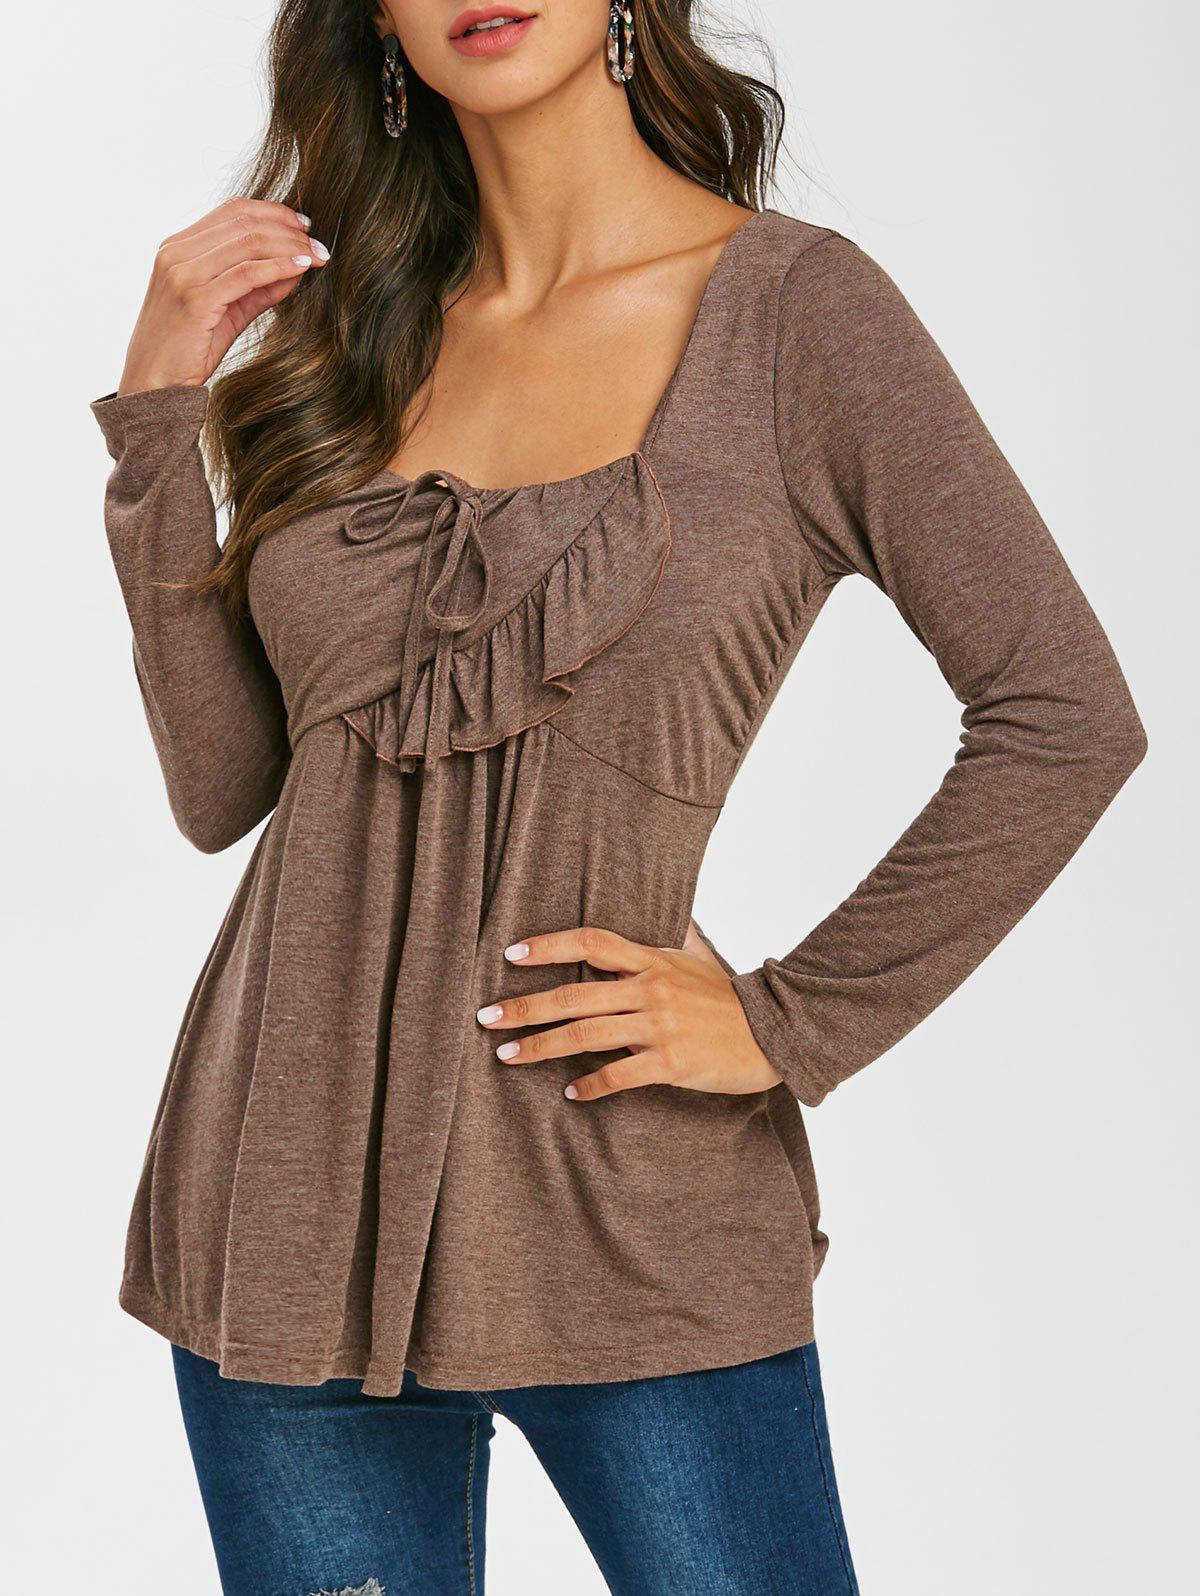 Hot Long Sleeve Space Dye Print Ruffle T-shirt